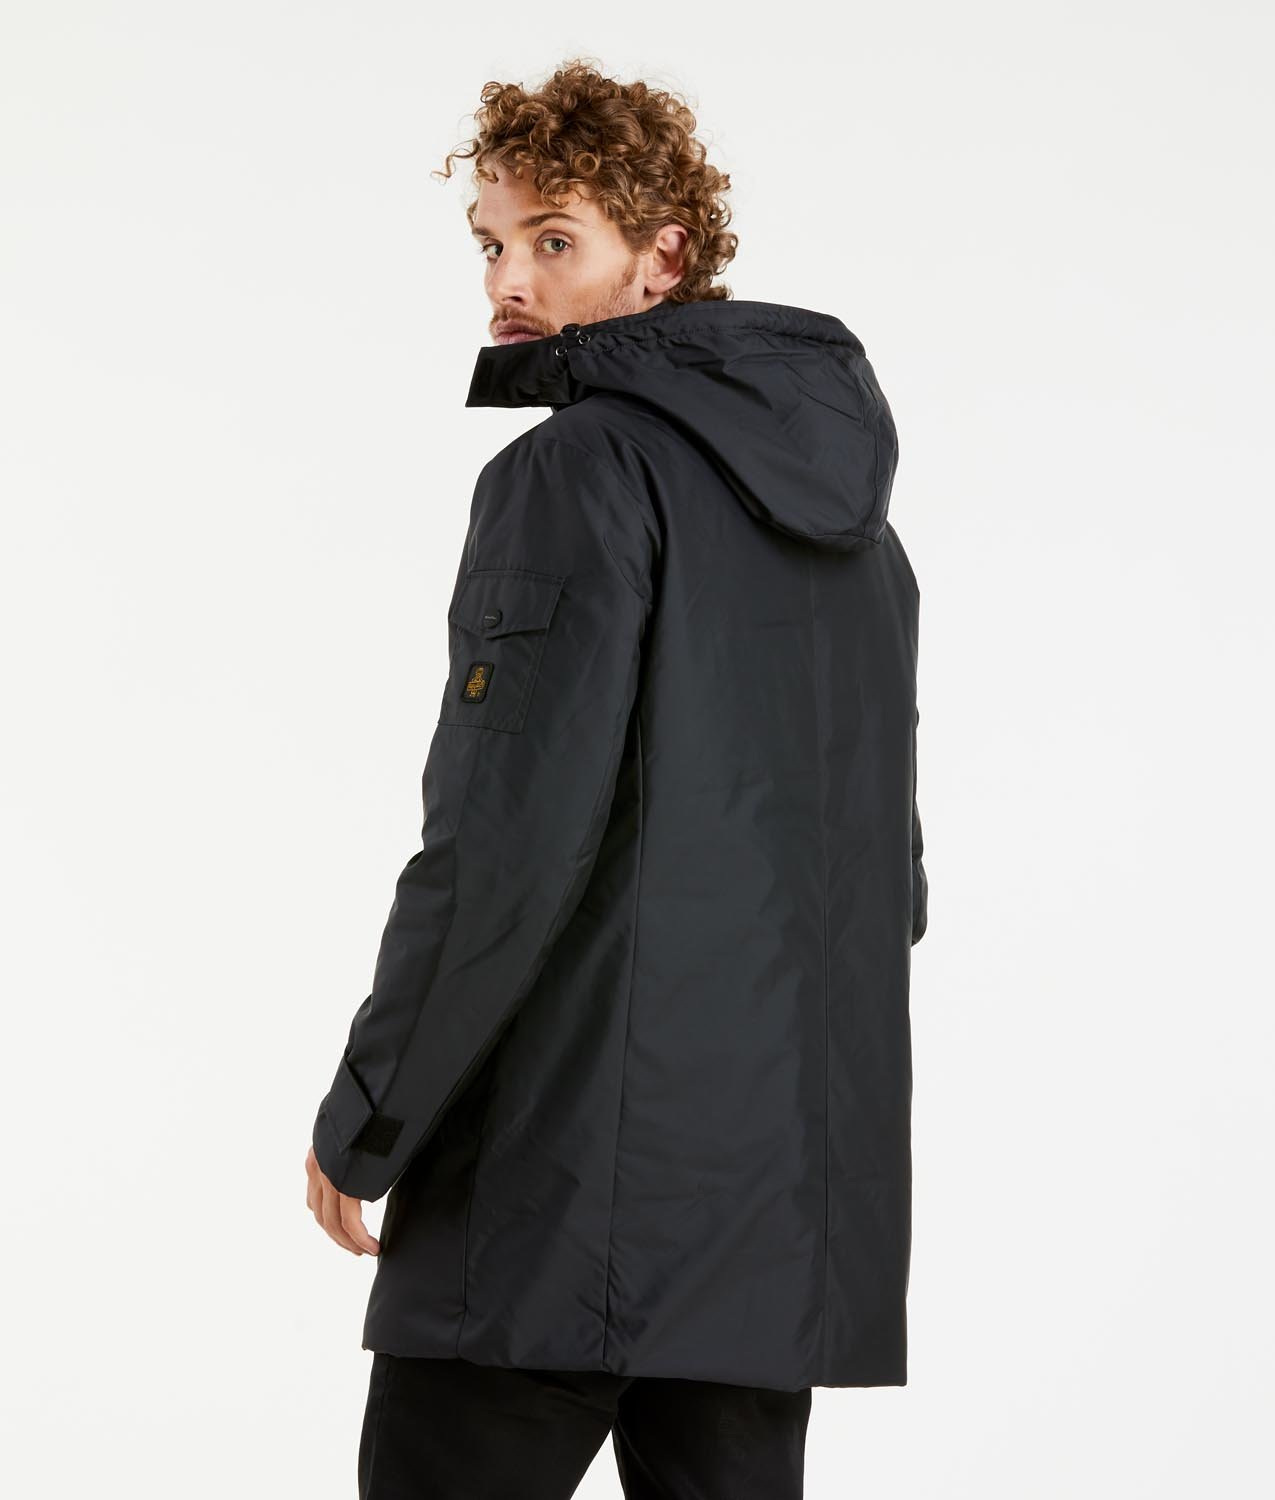 NEW ERIE JACKET